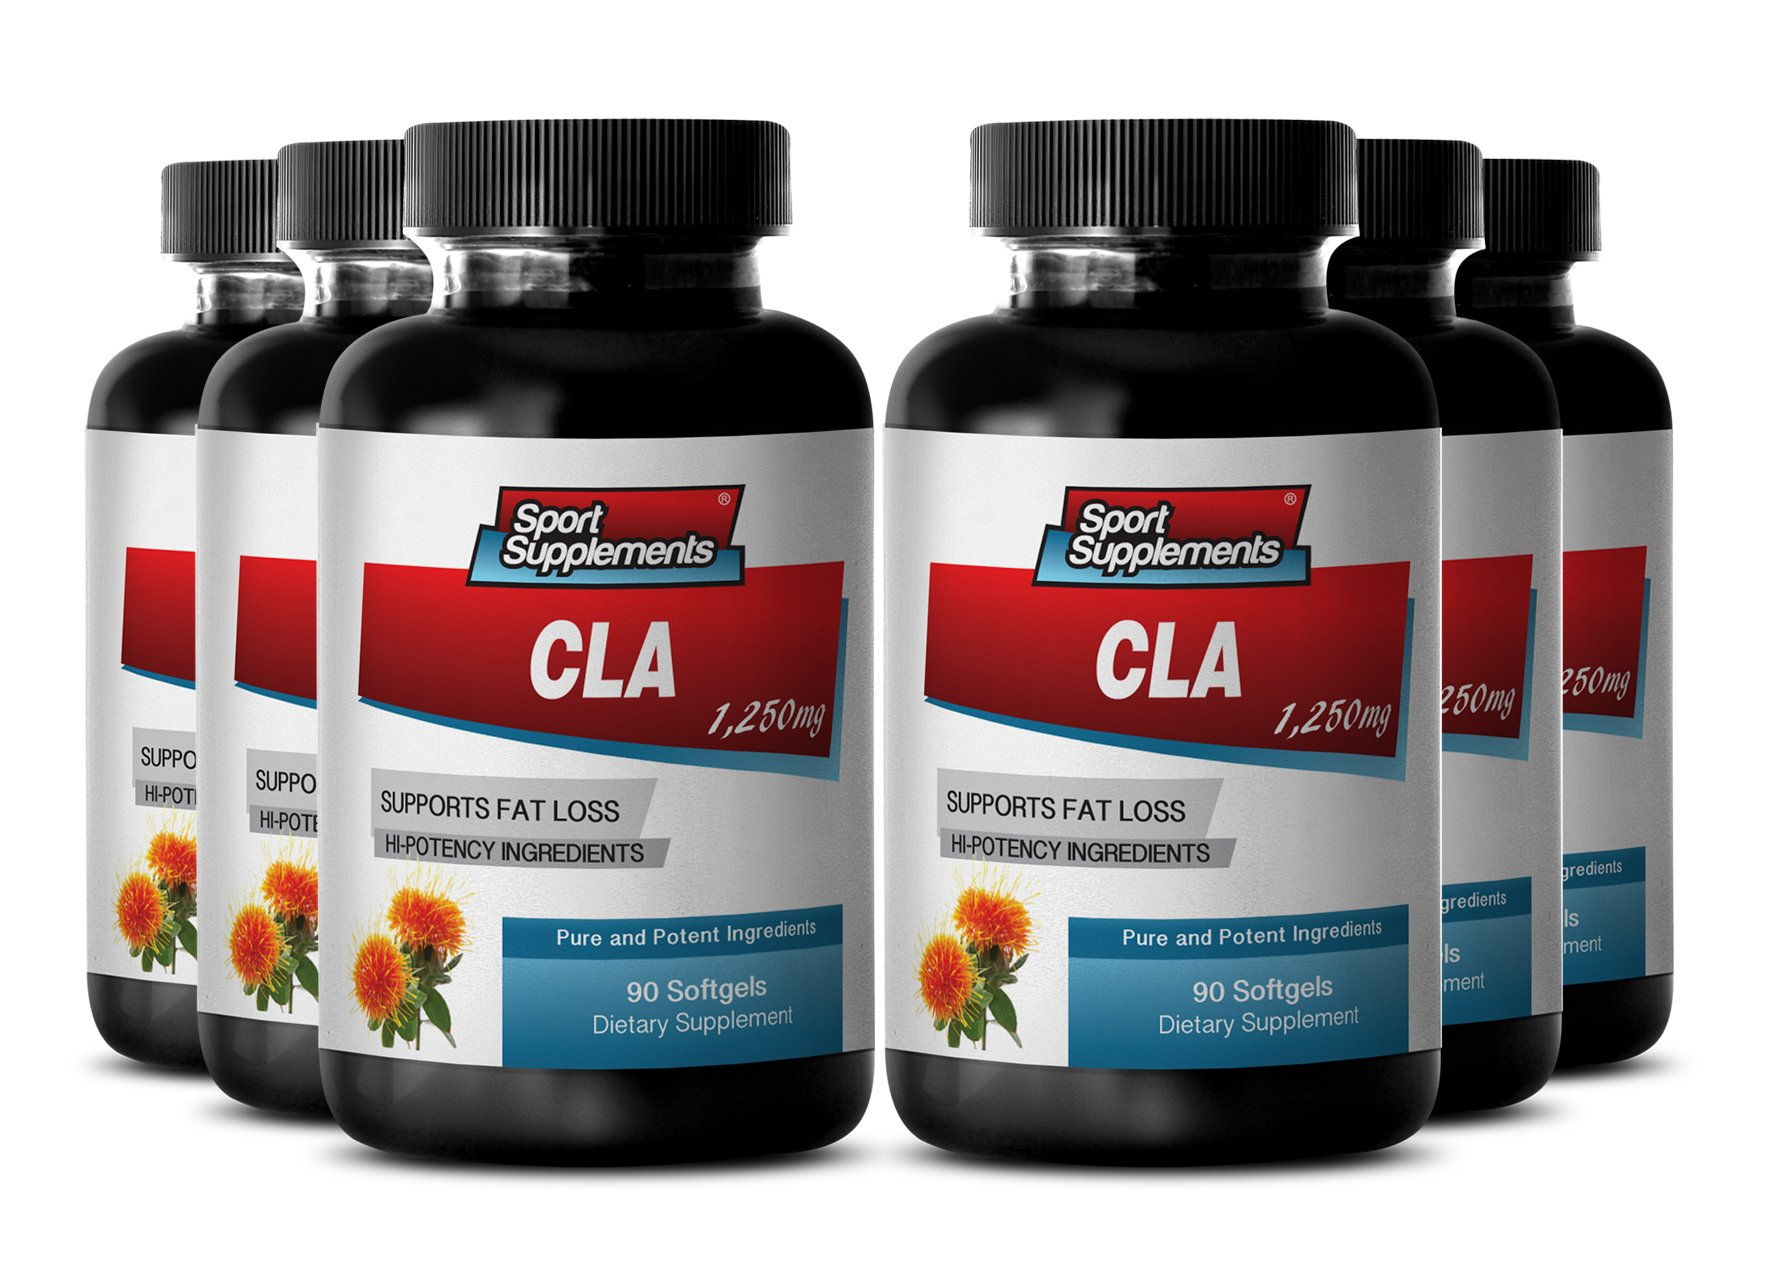 CLA Diet Supplement, Weightloss, Body Fat Loss Lean Muscle (6 Bottles, 540 Softgels)